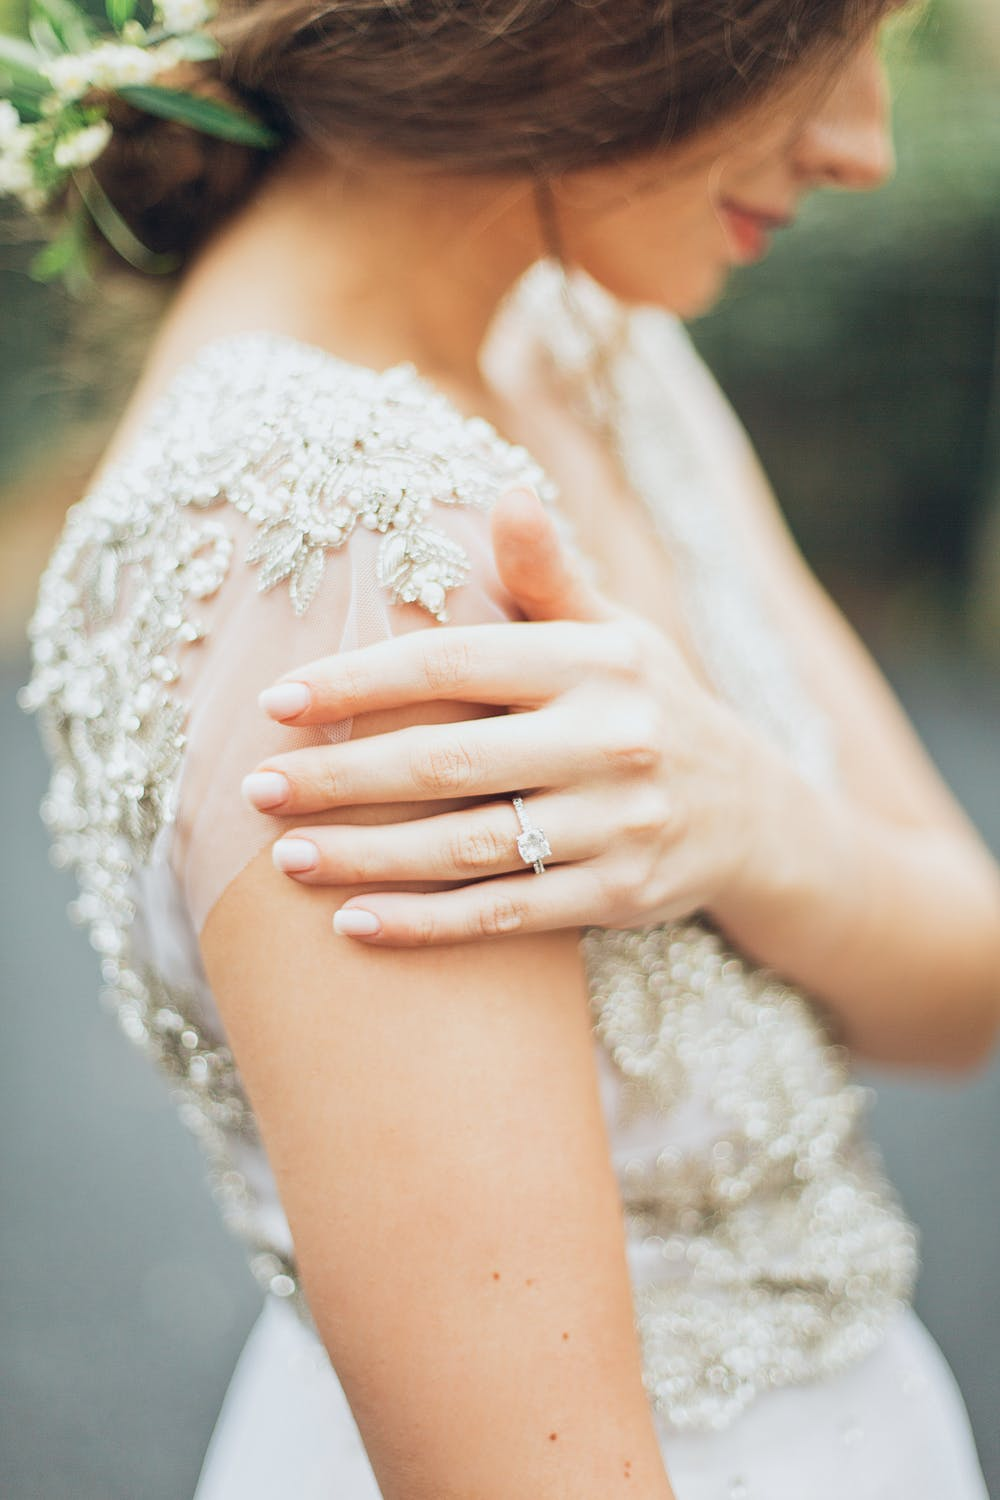 Woman showing off her wedding ring made in Melbourne